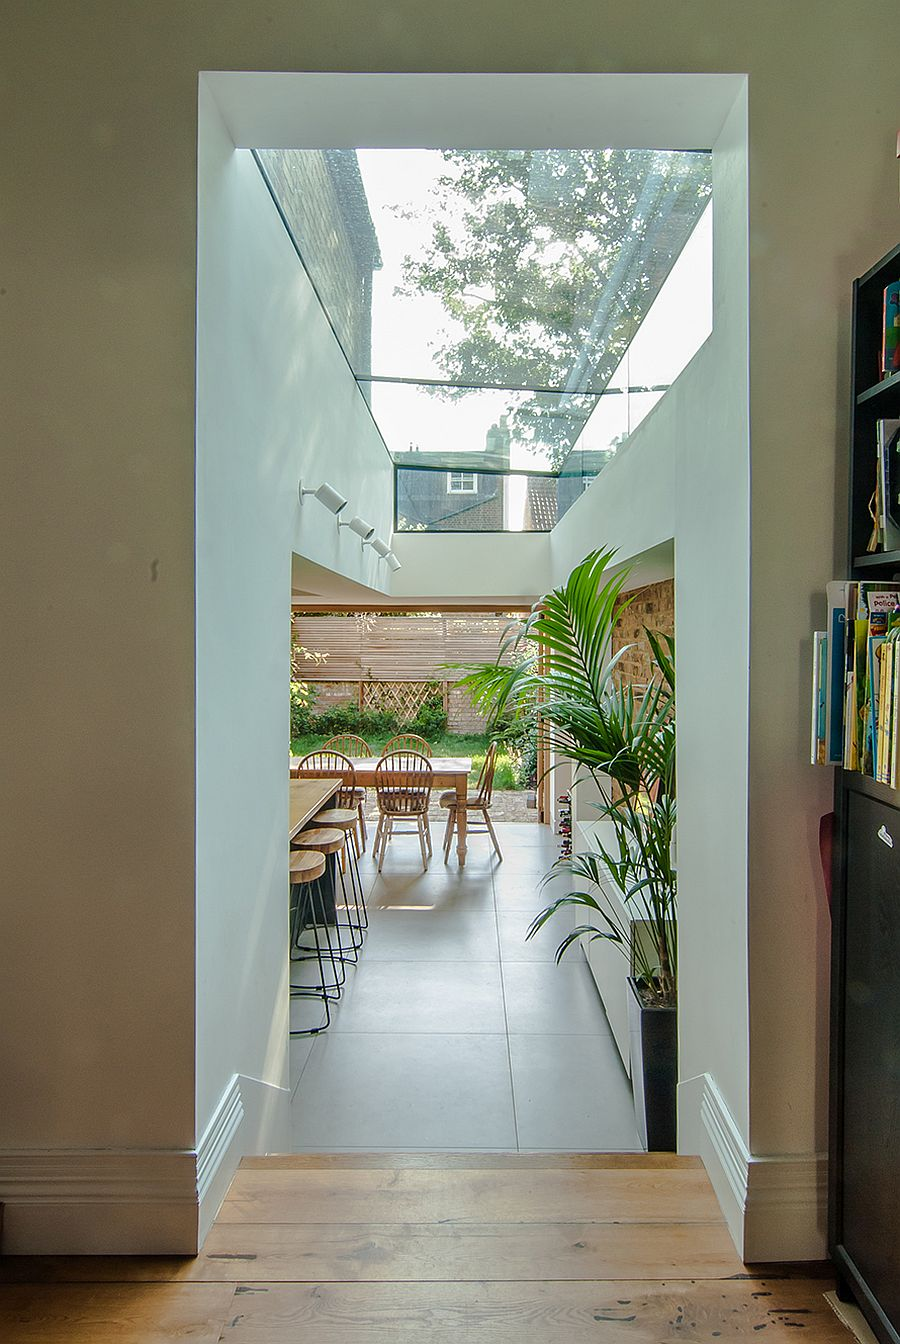 Combining-the-old-with-the-new-at-the-stylish-Stoke-Newington-home-91589